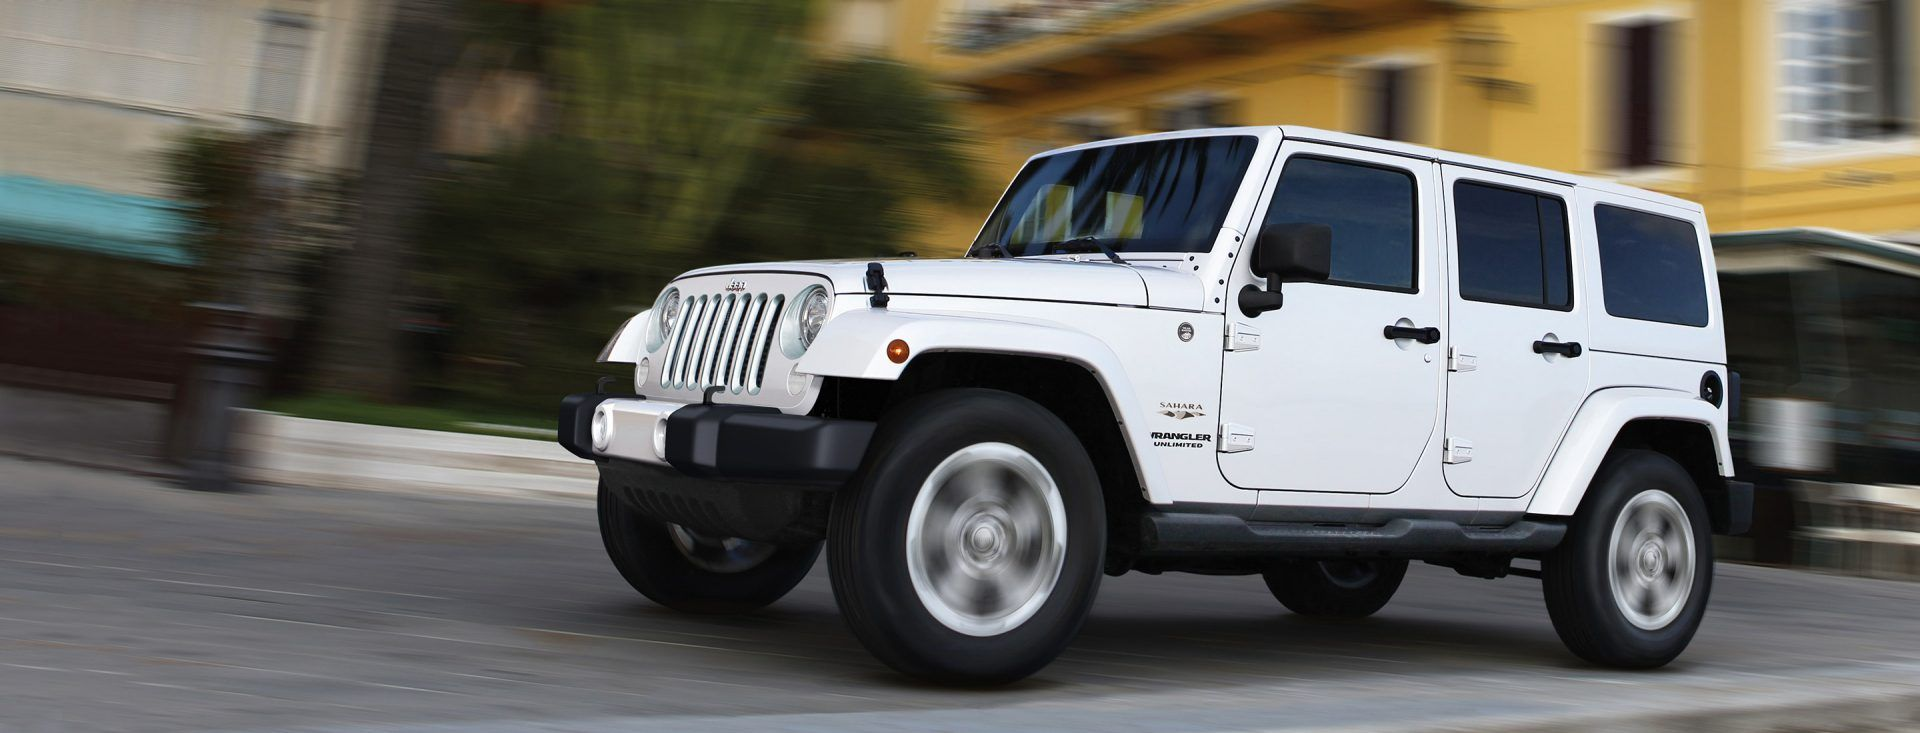 Image result for jeep unlimited